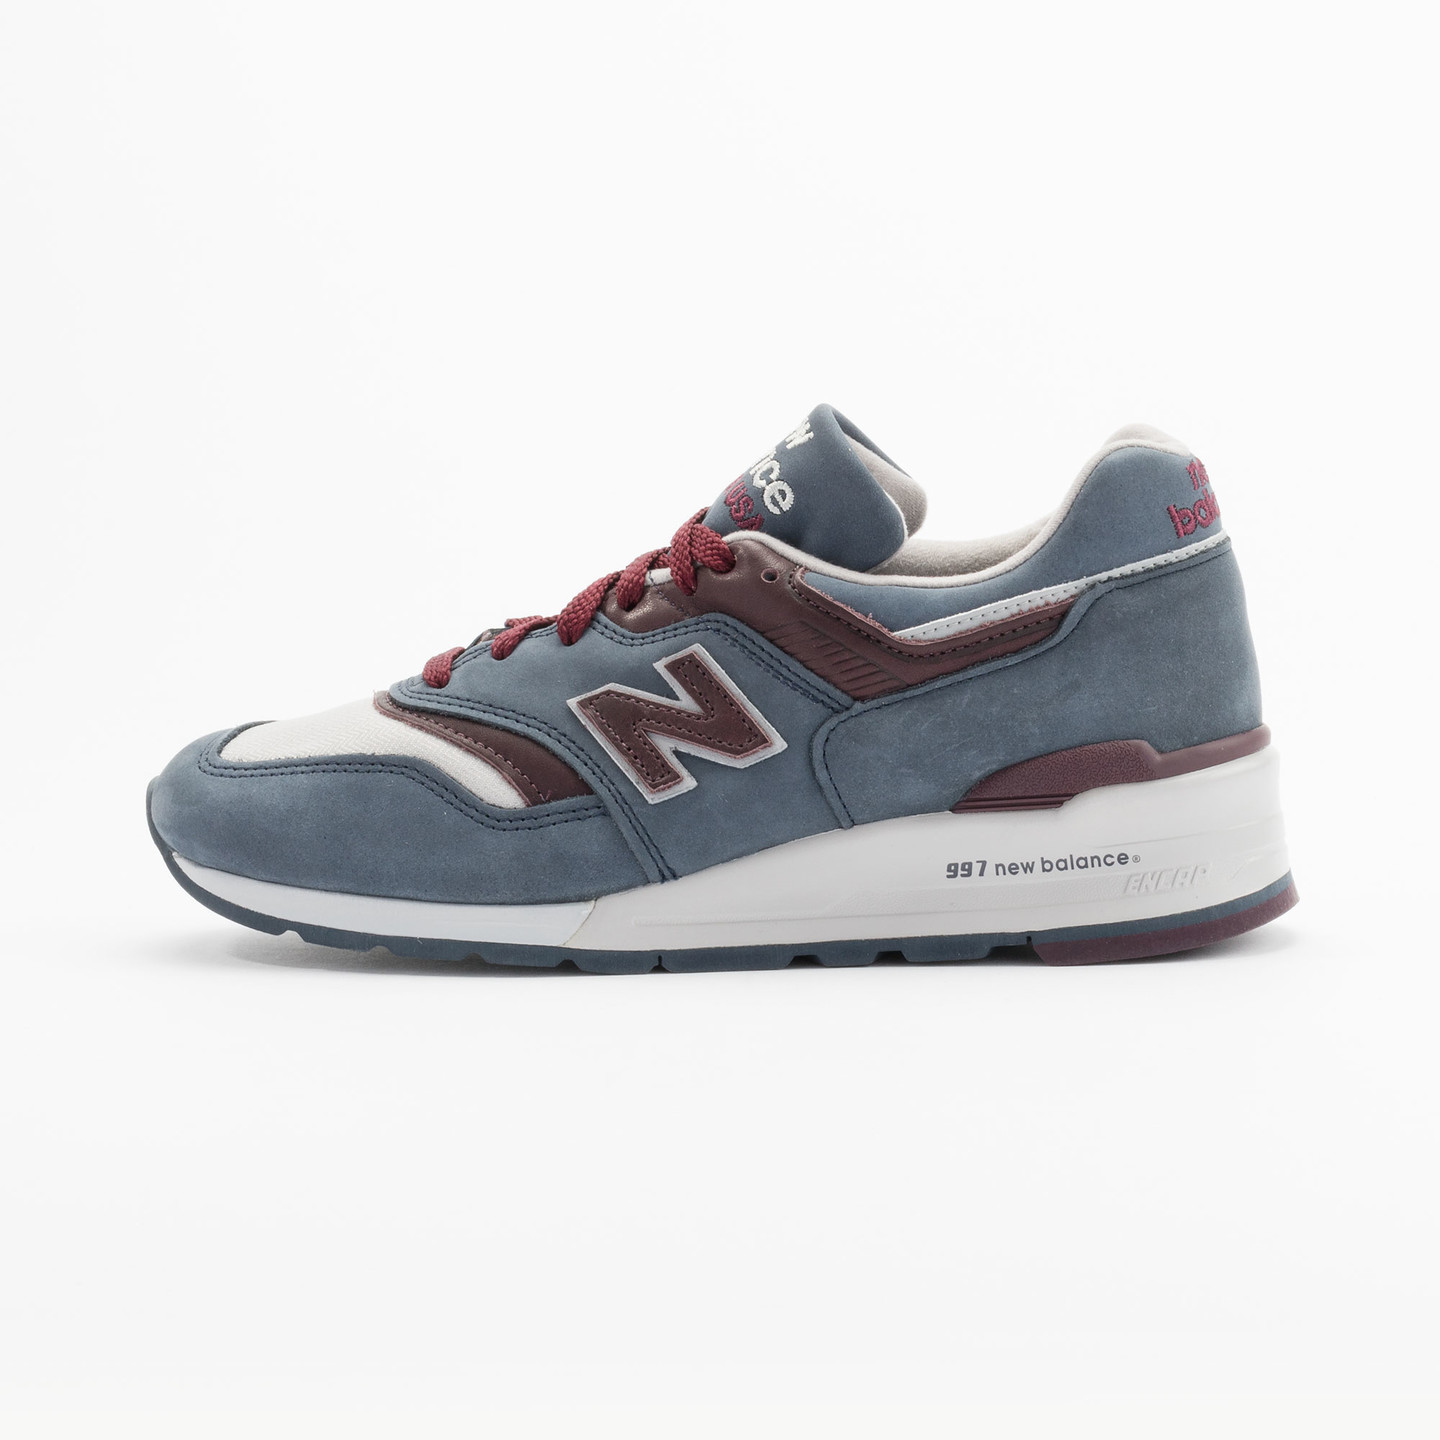 New Balance M997 DGM - Made in USA Grey Steel / Burgundy M997DGM-41.5